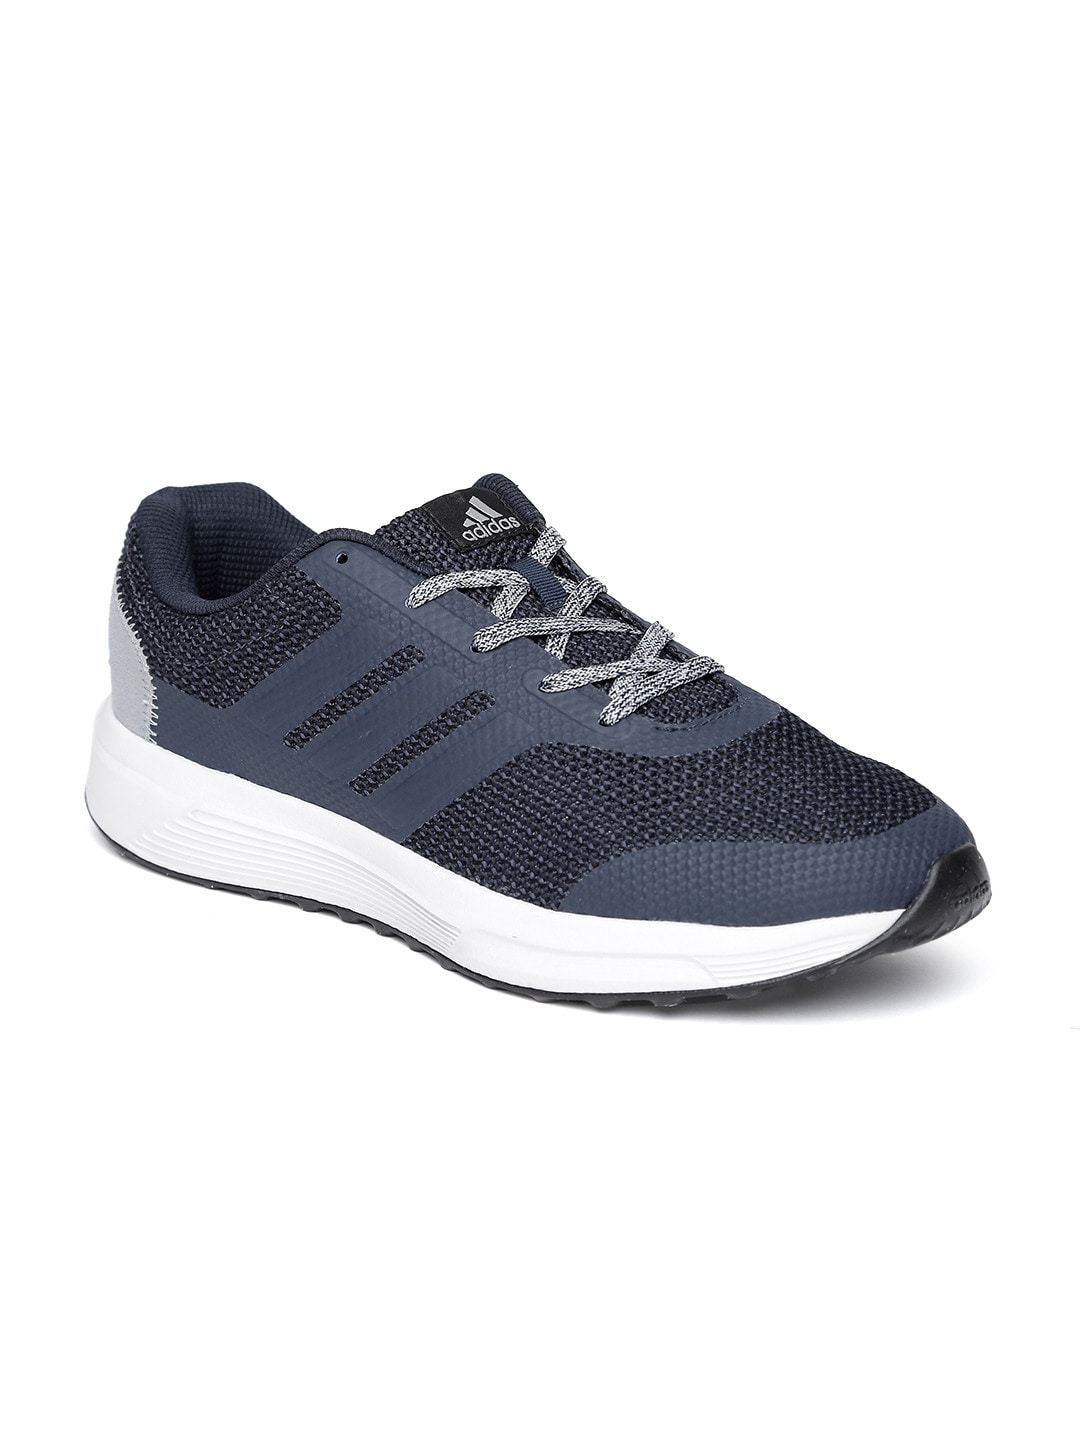 Adidas Shoes - Buy Adidas Shoes for Men   Women Online - Myntra c882e8a96